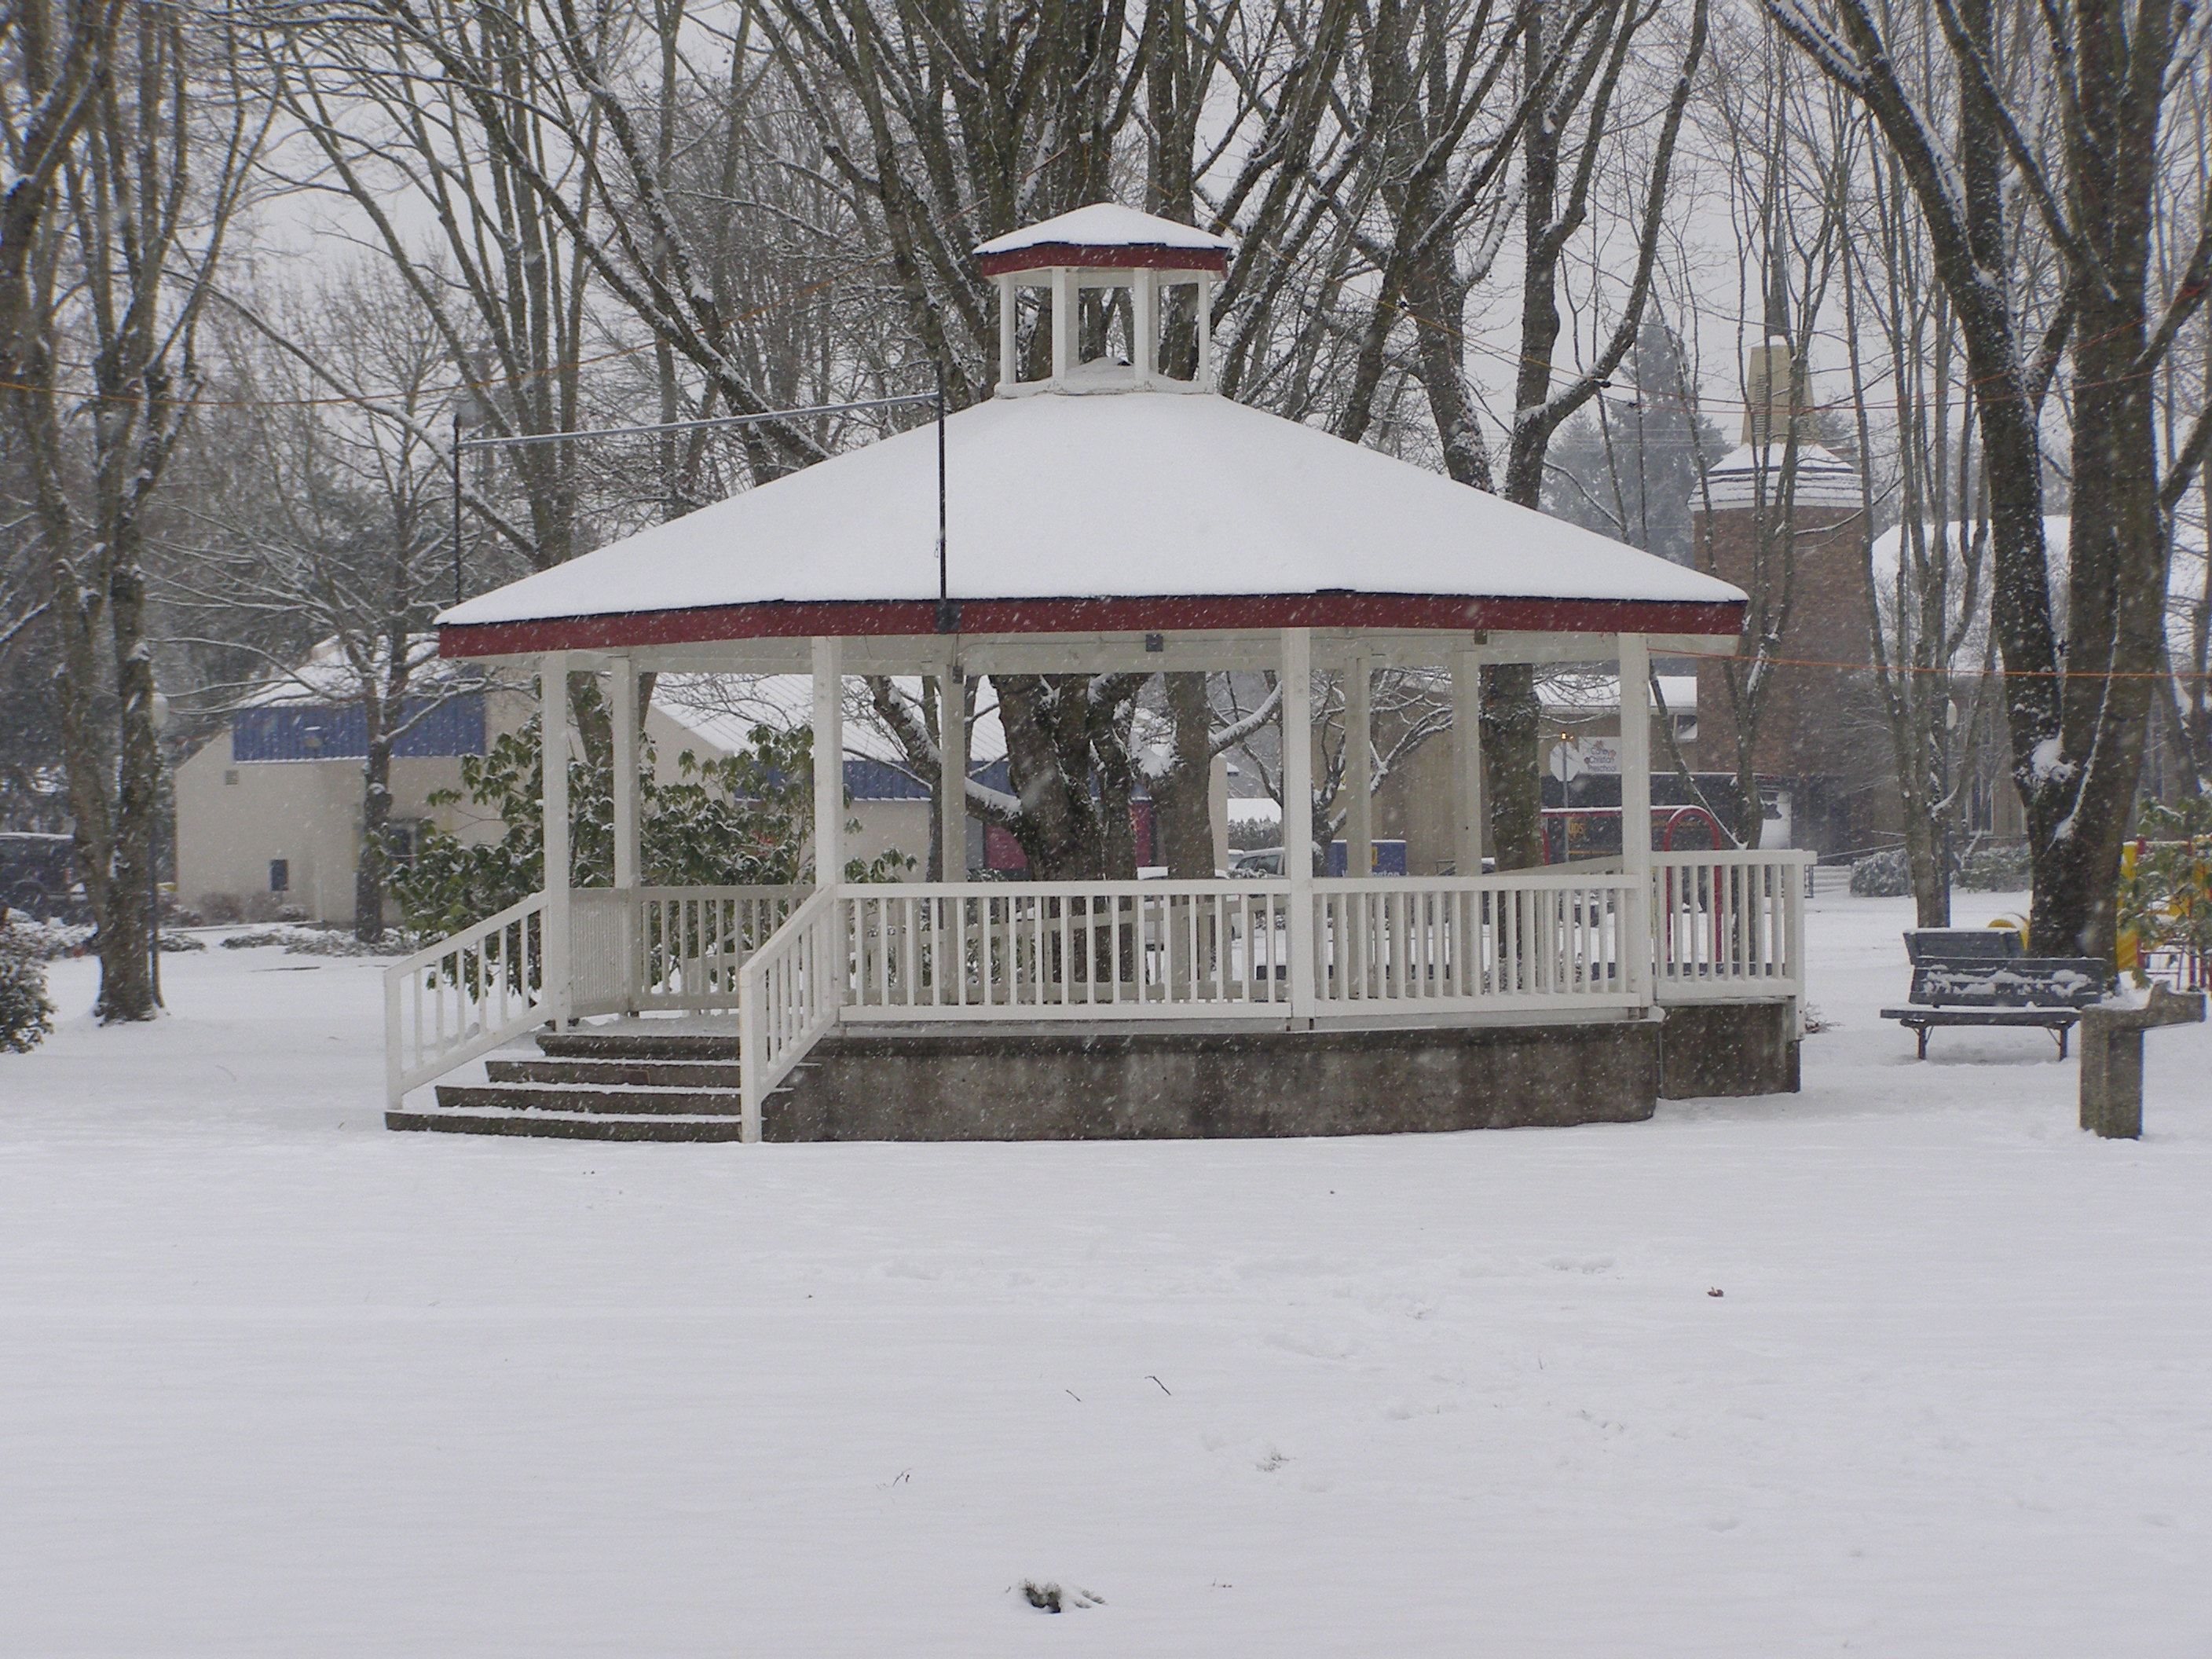 Bikes N More Canby Or Gazebo in Wait Park on a rare